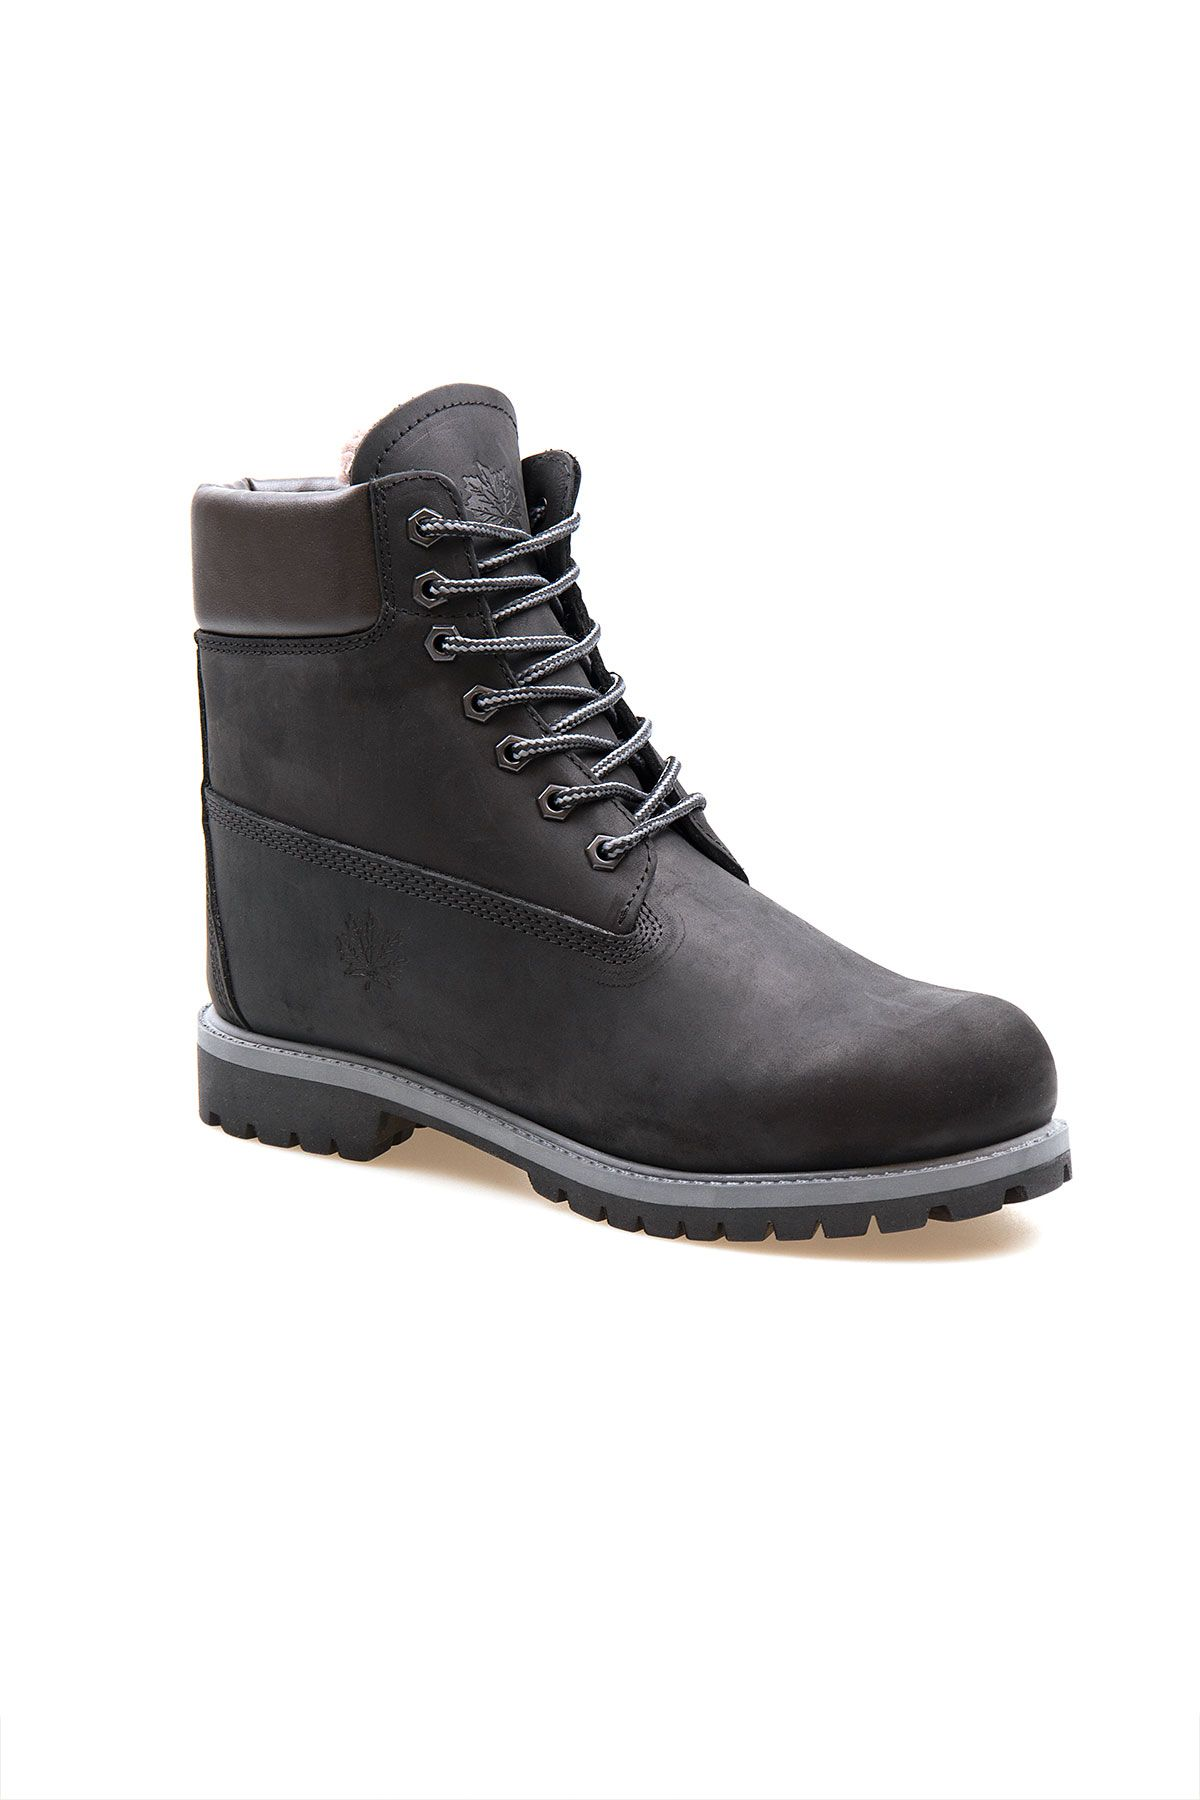 Pegia Genuine Nubuck Men's Boots 500900 Black